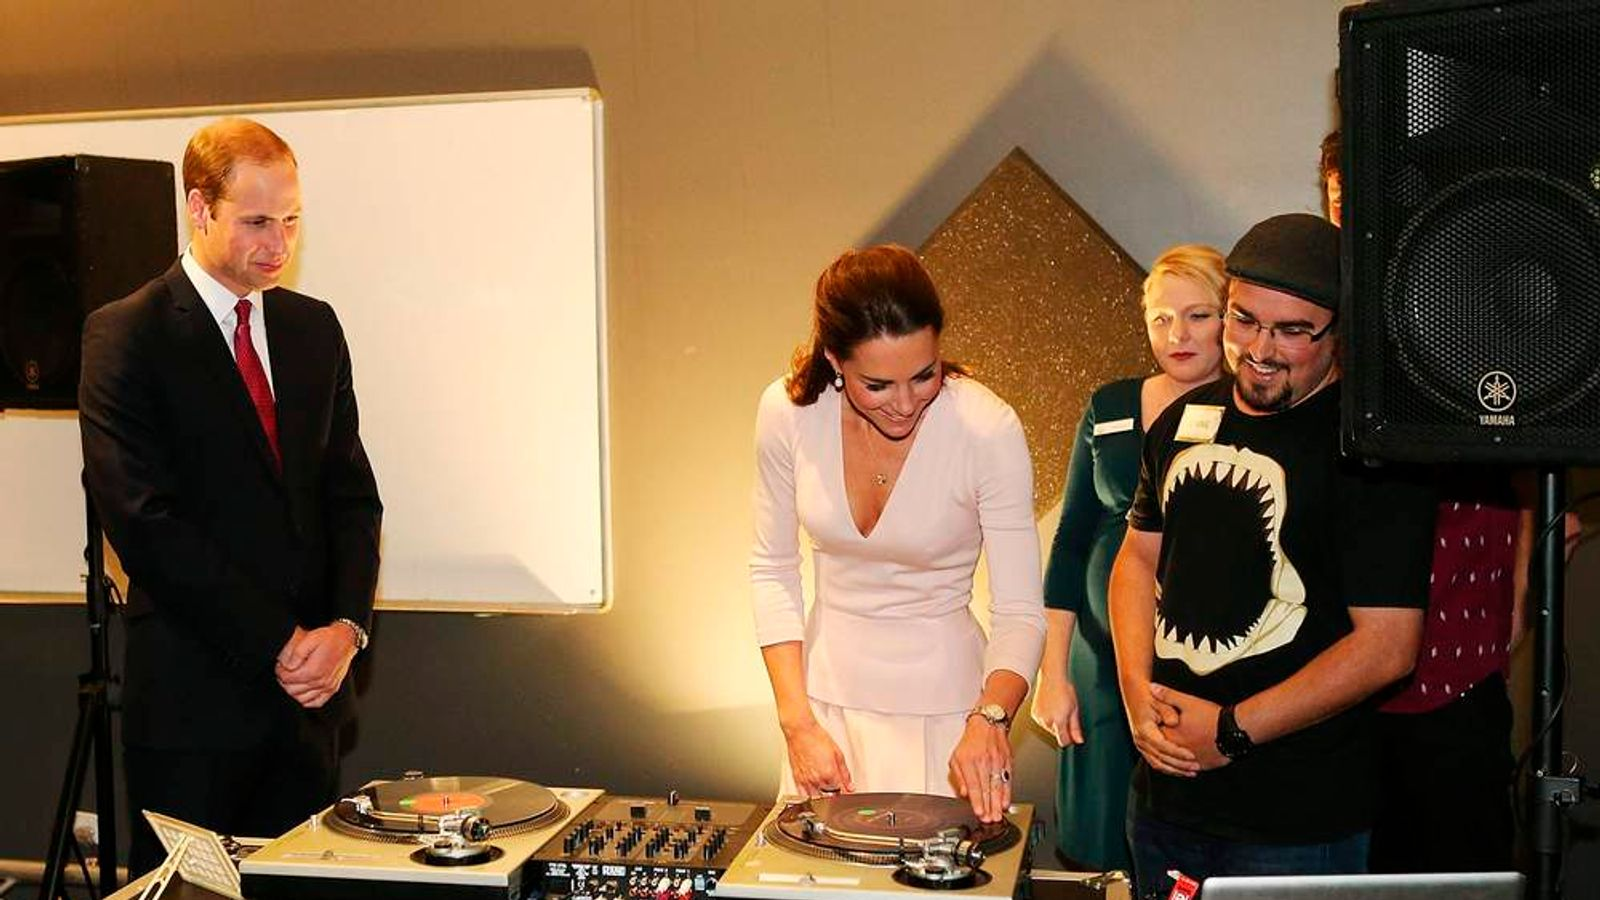 Prince William, Duke of Cambridge, looks on as Catherine, Duchess of Cambridge is shown how to play on DJ decks at the youth community centre, The Northern Sound System in Elizabeth near Adelaide